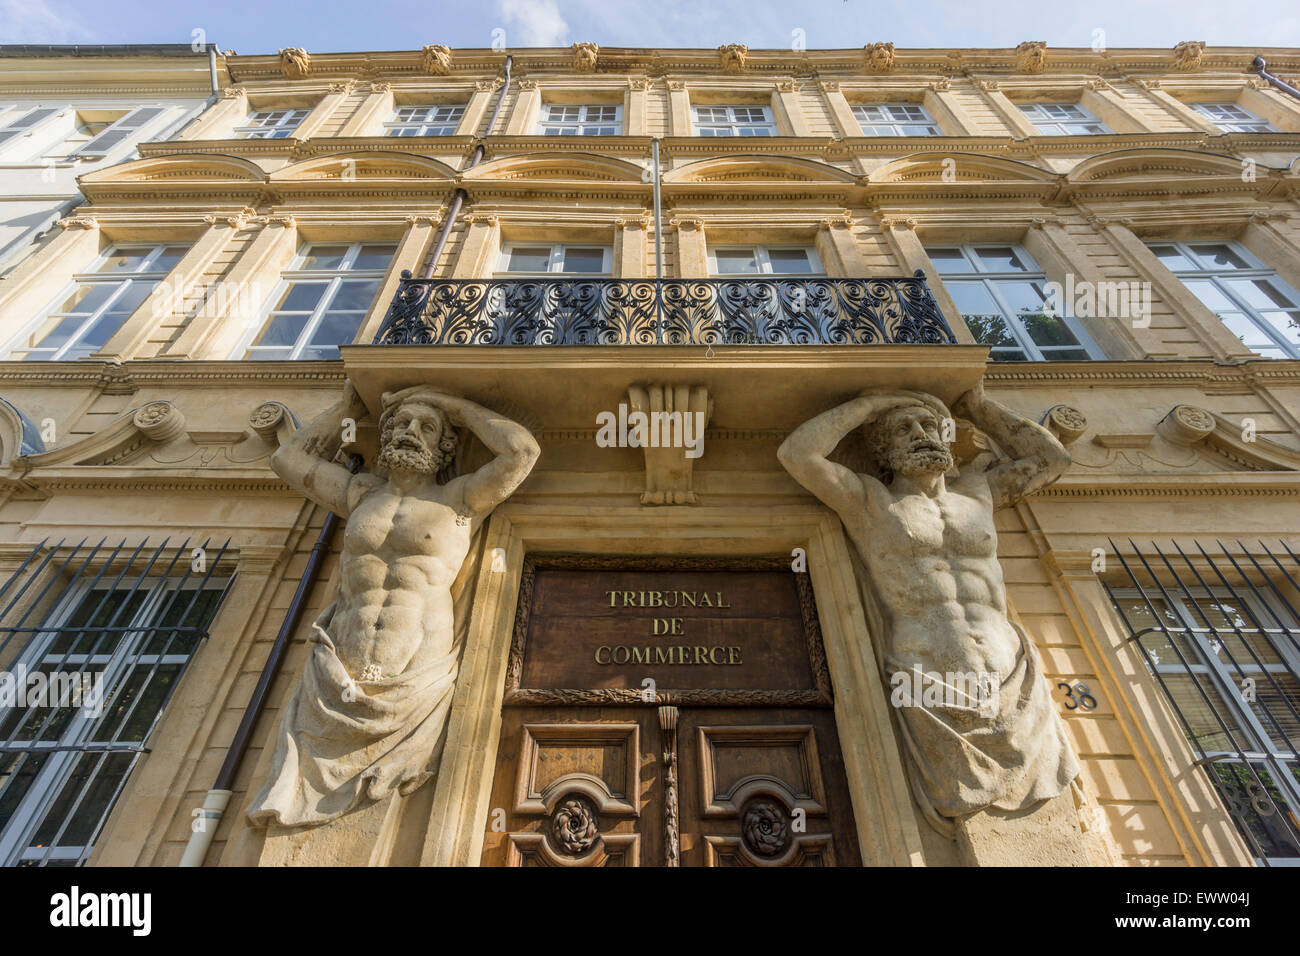 Dorway with caryatids, Tribunal de Commerce, Atlas Firgures,   Cours Mirabeau, Aix-en-Provence, Bouches-du-Rhone Stock Photo